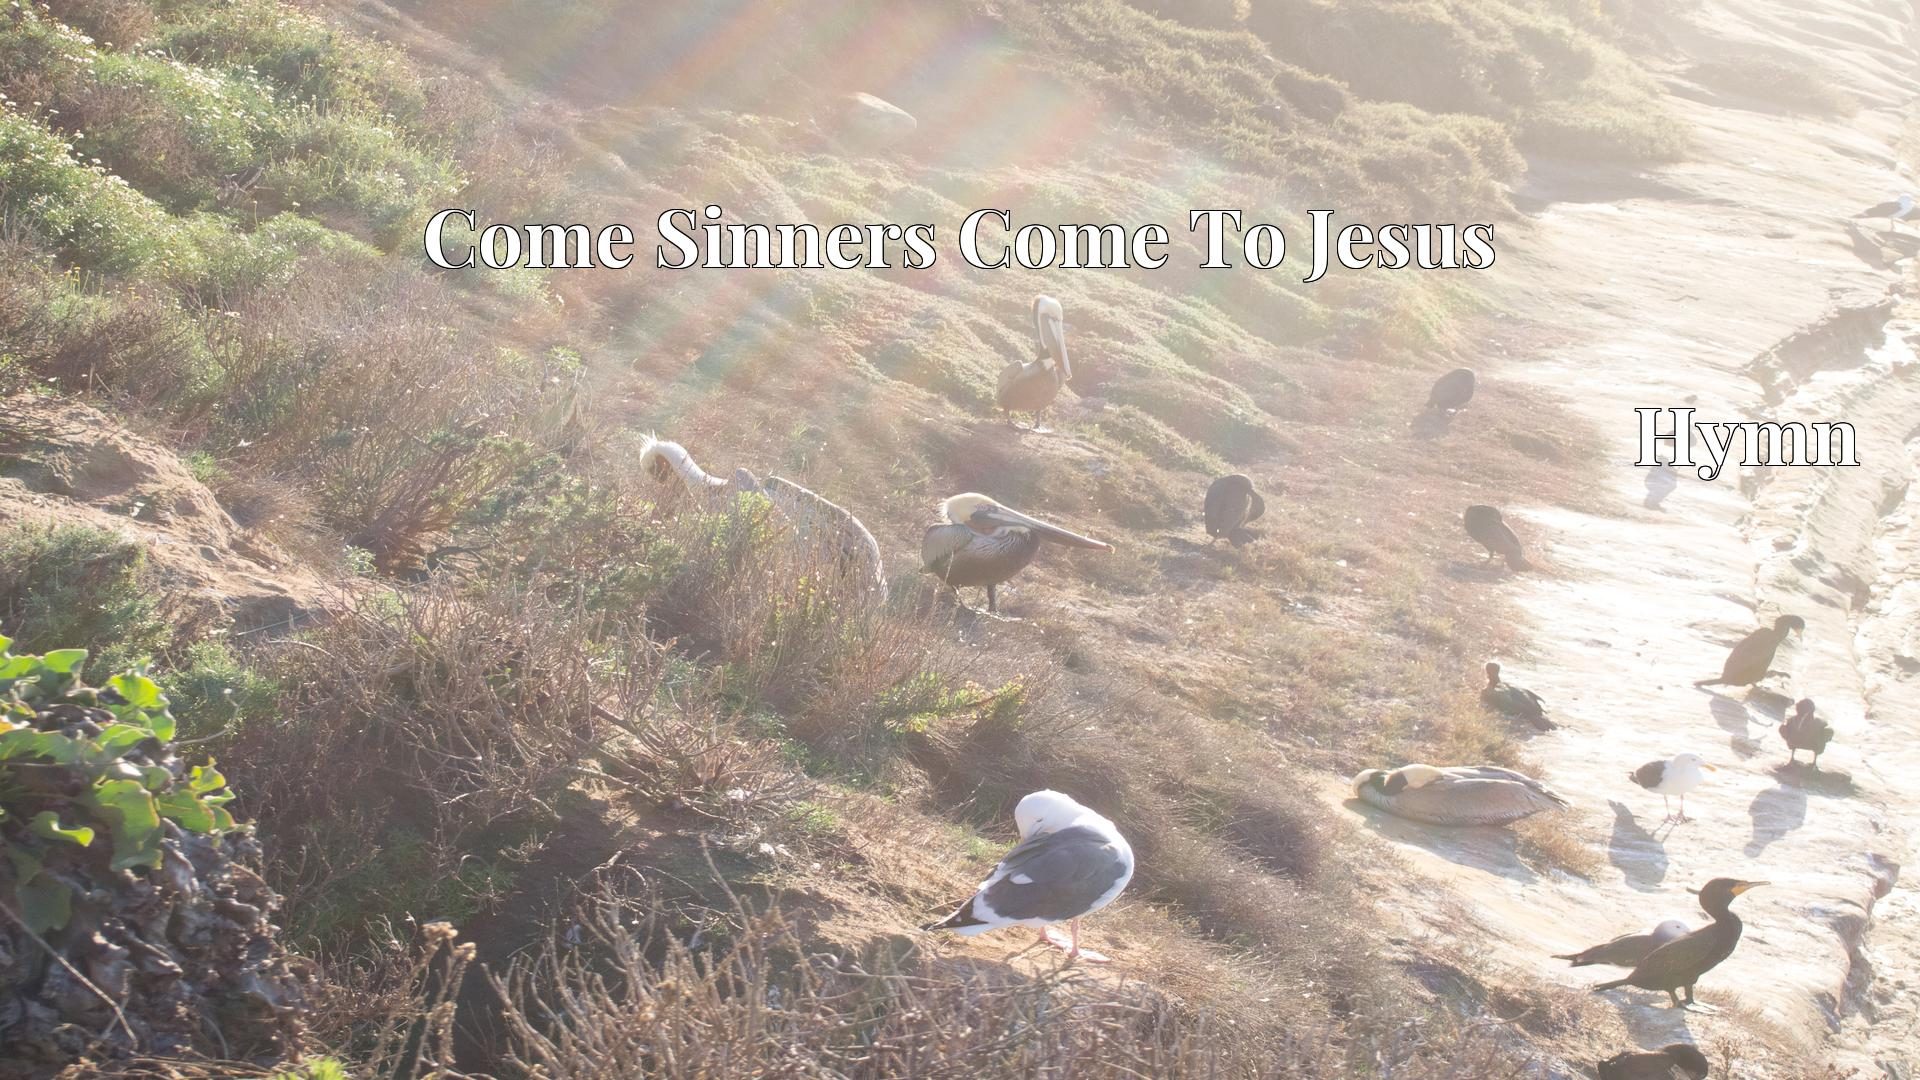 Come Sinners Come To Jesus - Hymn